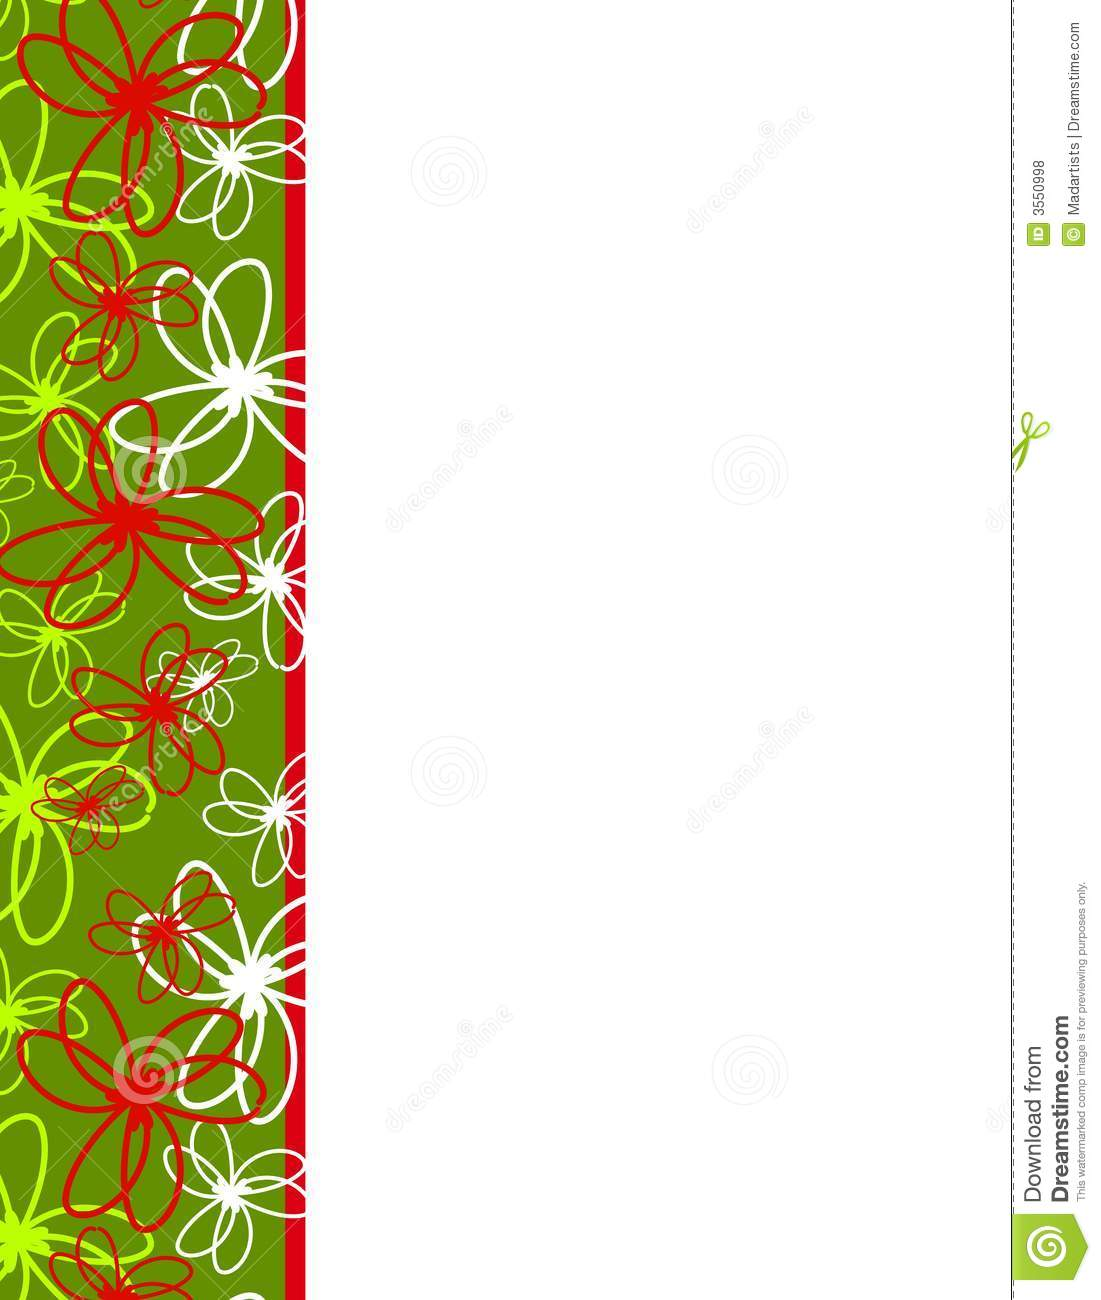 holiday clip art borders free clipart panda free clipart images rh clipartpanda com holiday clip art borders and frames free winter holiday clip art borders